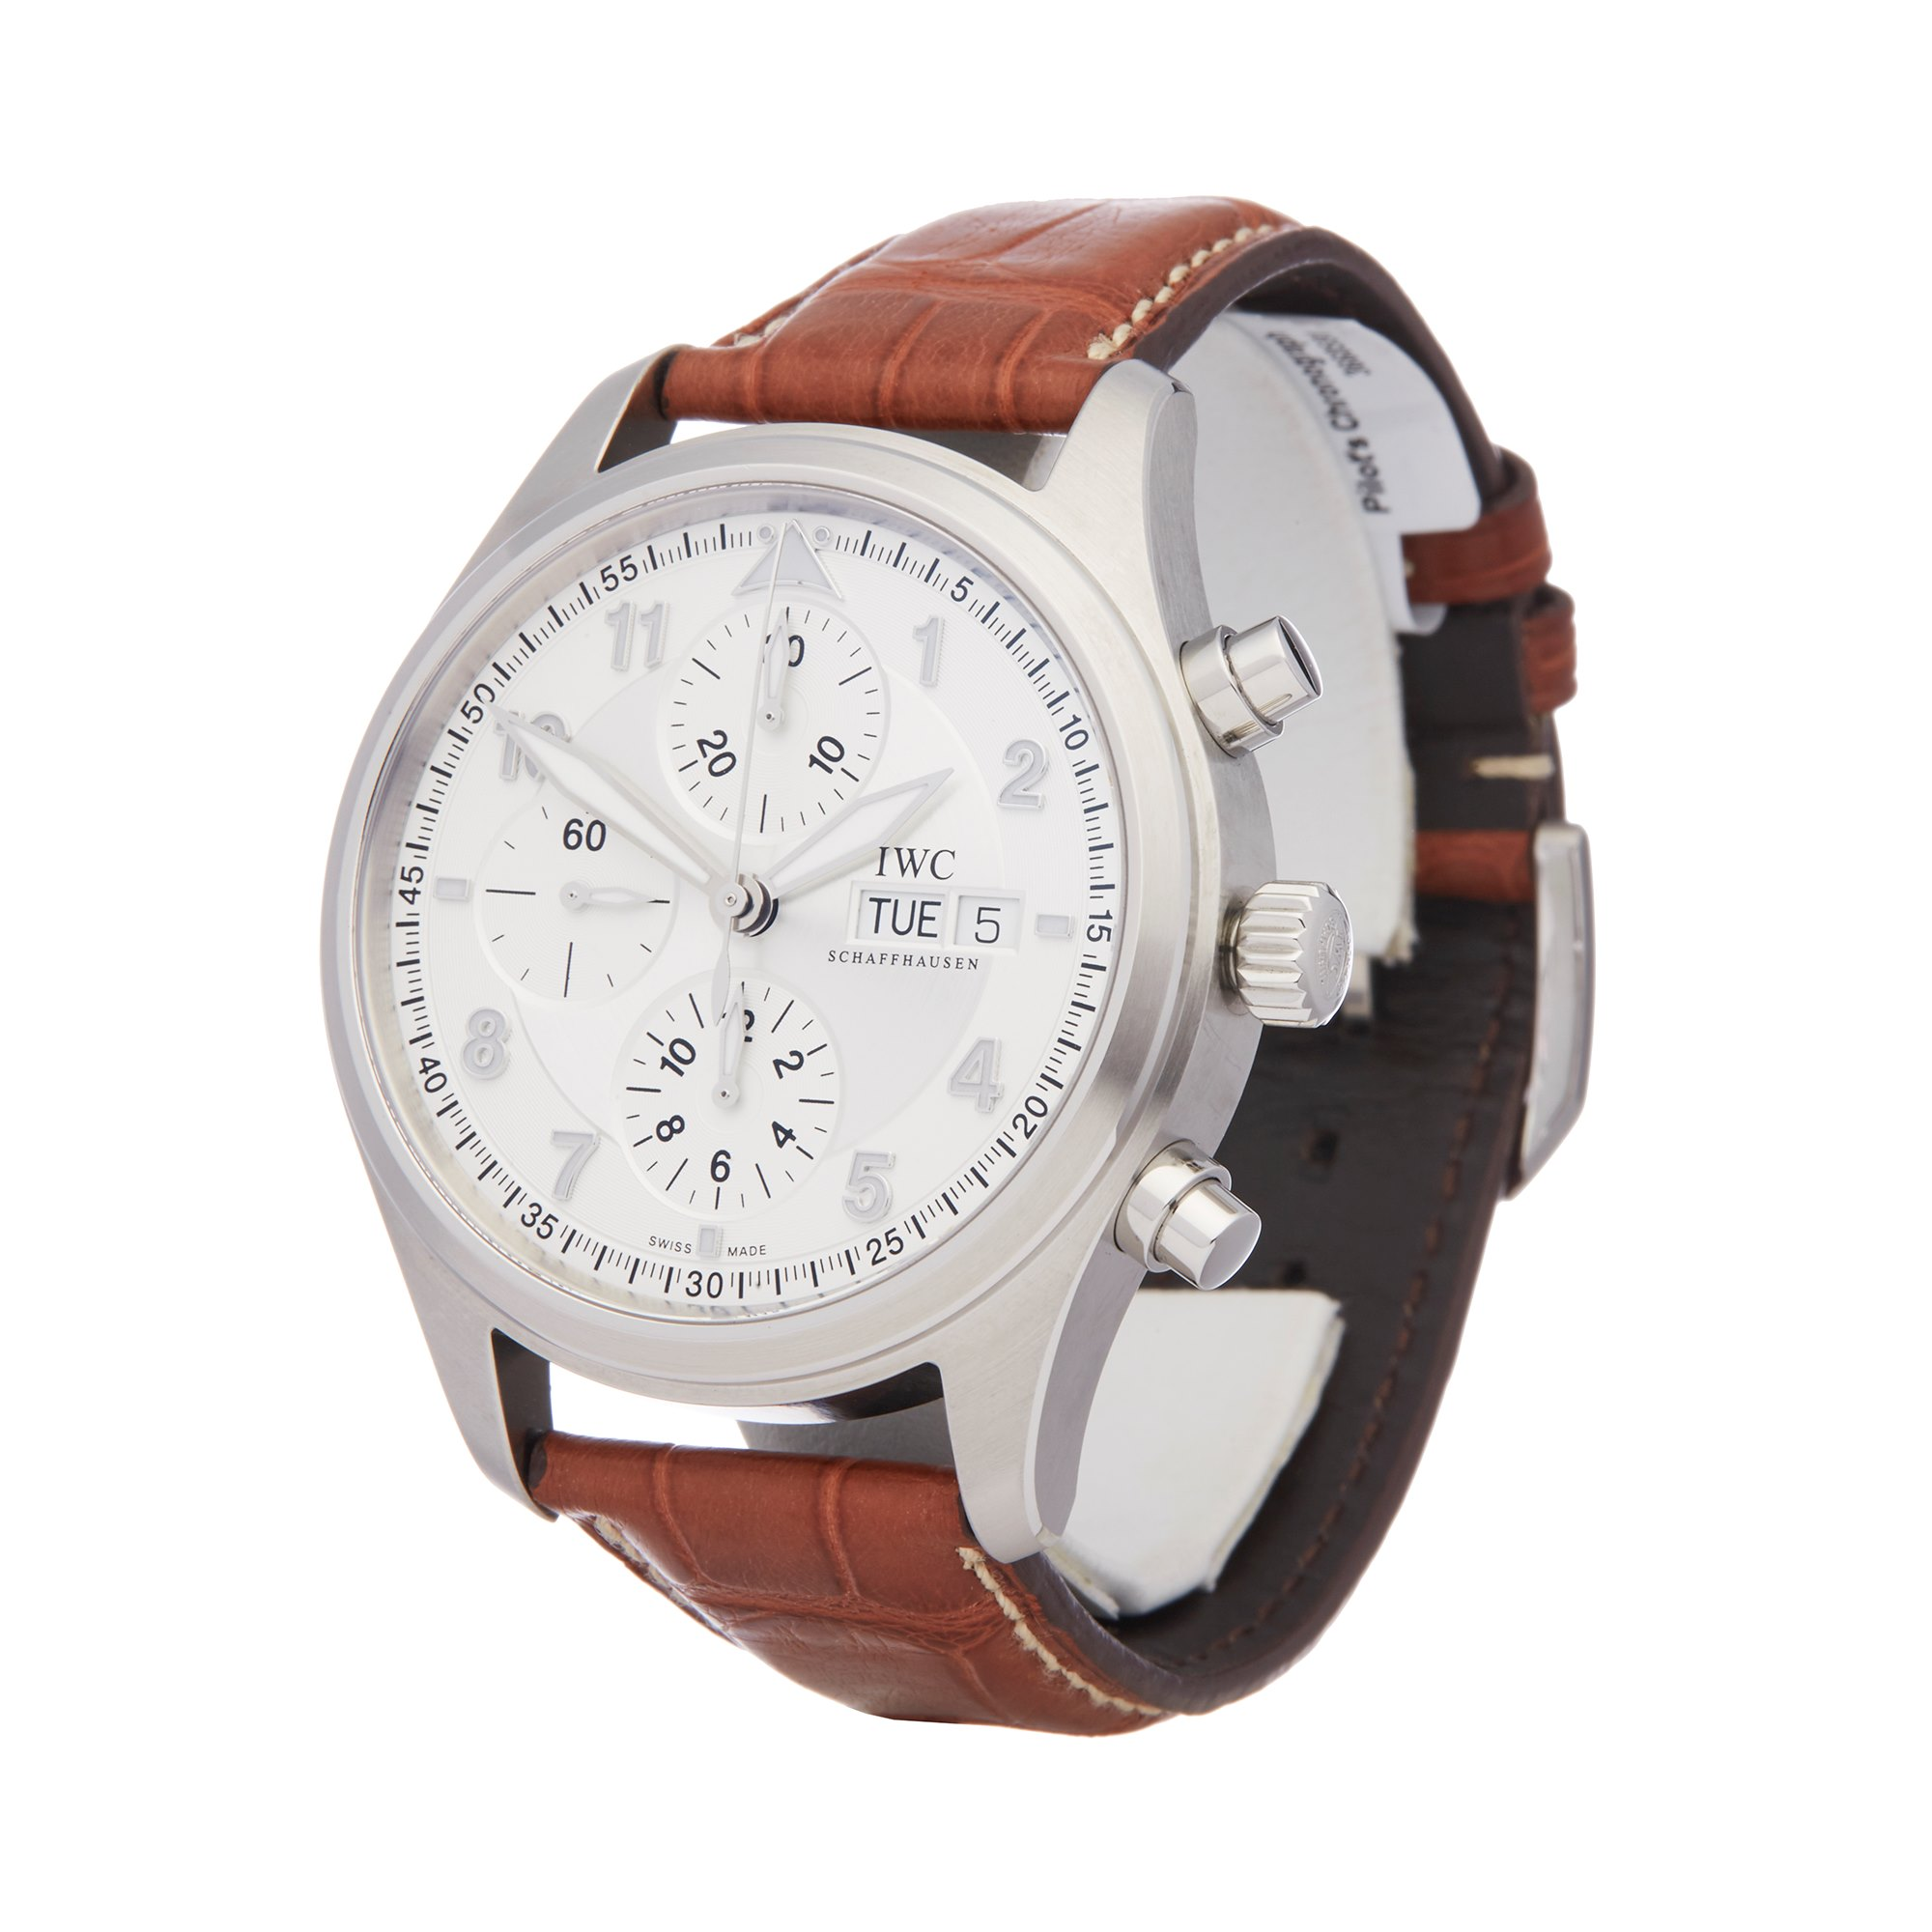 IWC Pilot's Chronograph Spitfire Chronograph Stainless Steel IW371702